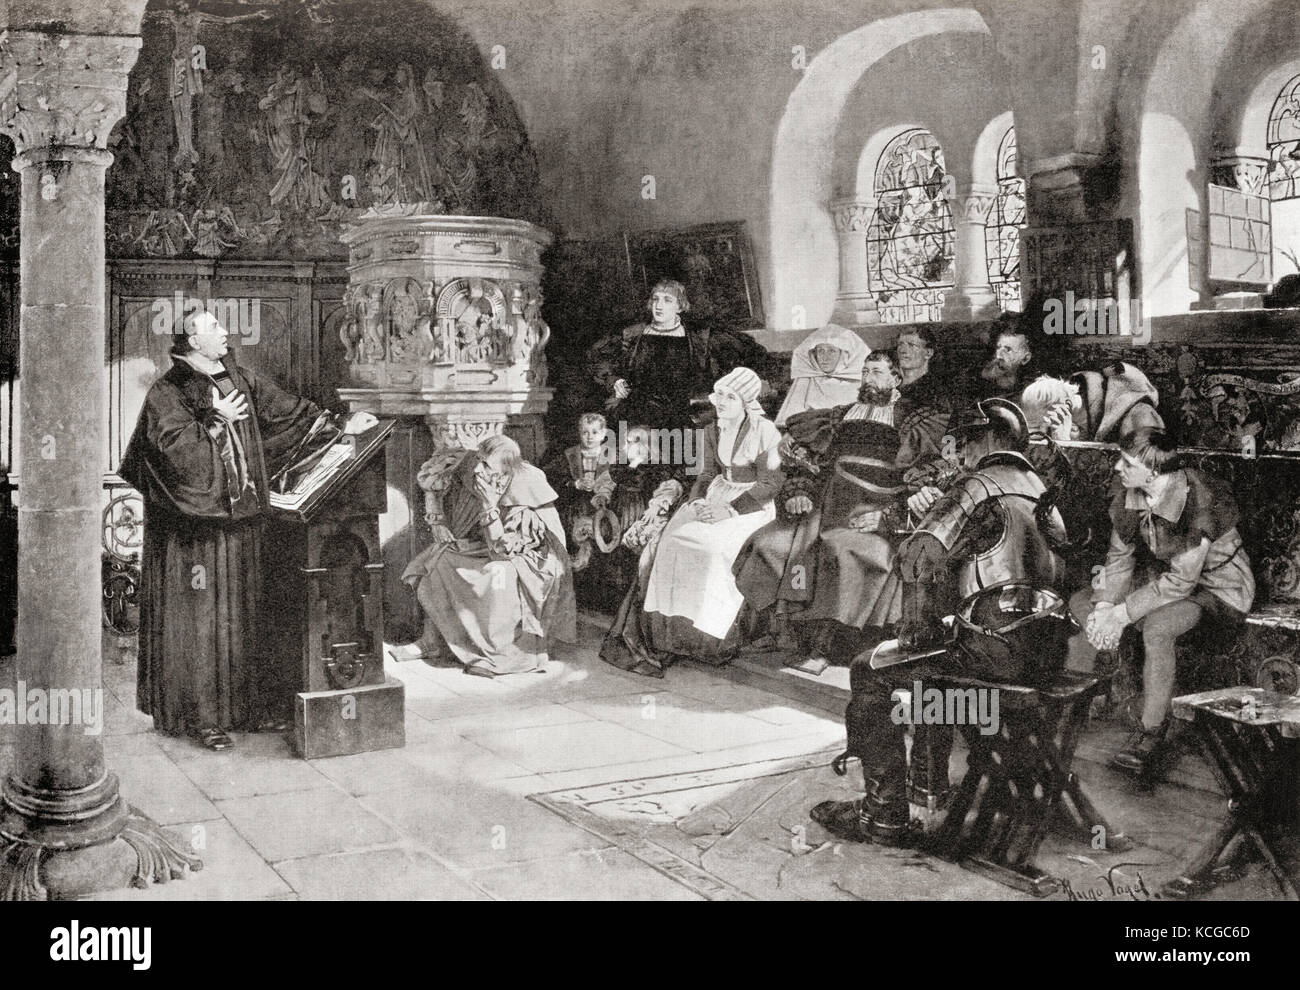 Martin Luther preaching in Wartburg Castle, Germany in 1521.  Martin Luther, 1483 – 1546. German professor of theology, - Stock Image